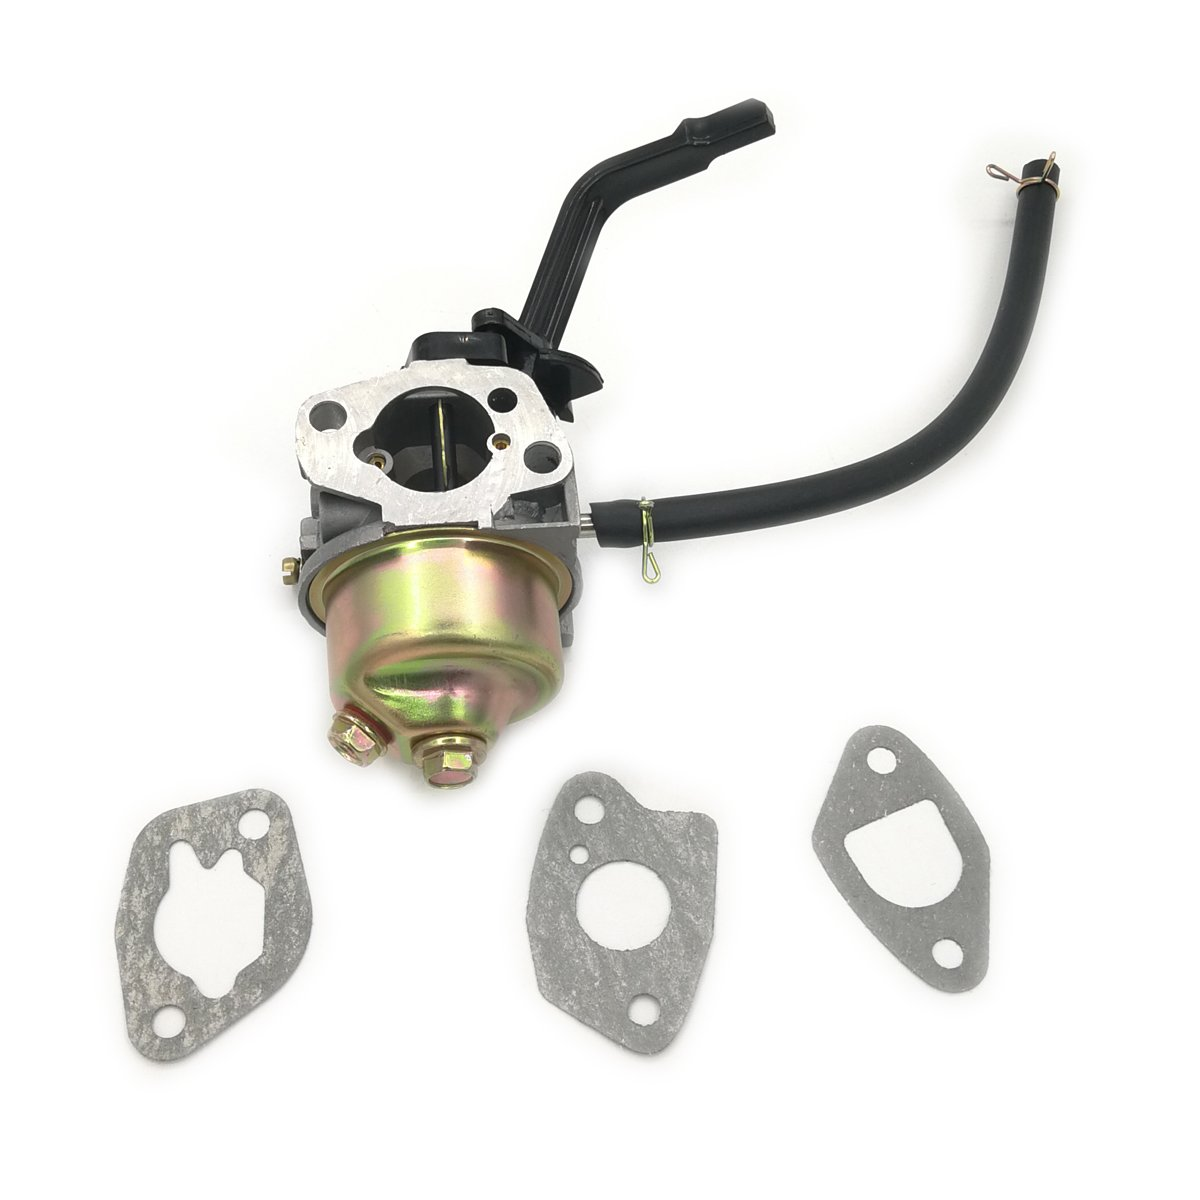 Shioshen Carburetor and Gasket for HONDA GX120 GX160 GX200 5.5Hp 6.5Hp Generator Engine Suzhou Cancanle Trading Co. Ltd.